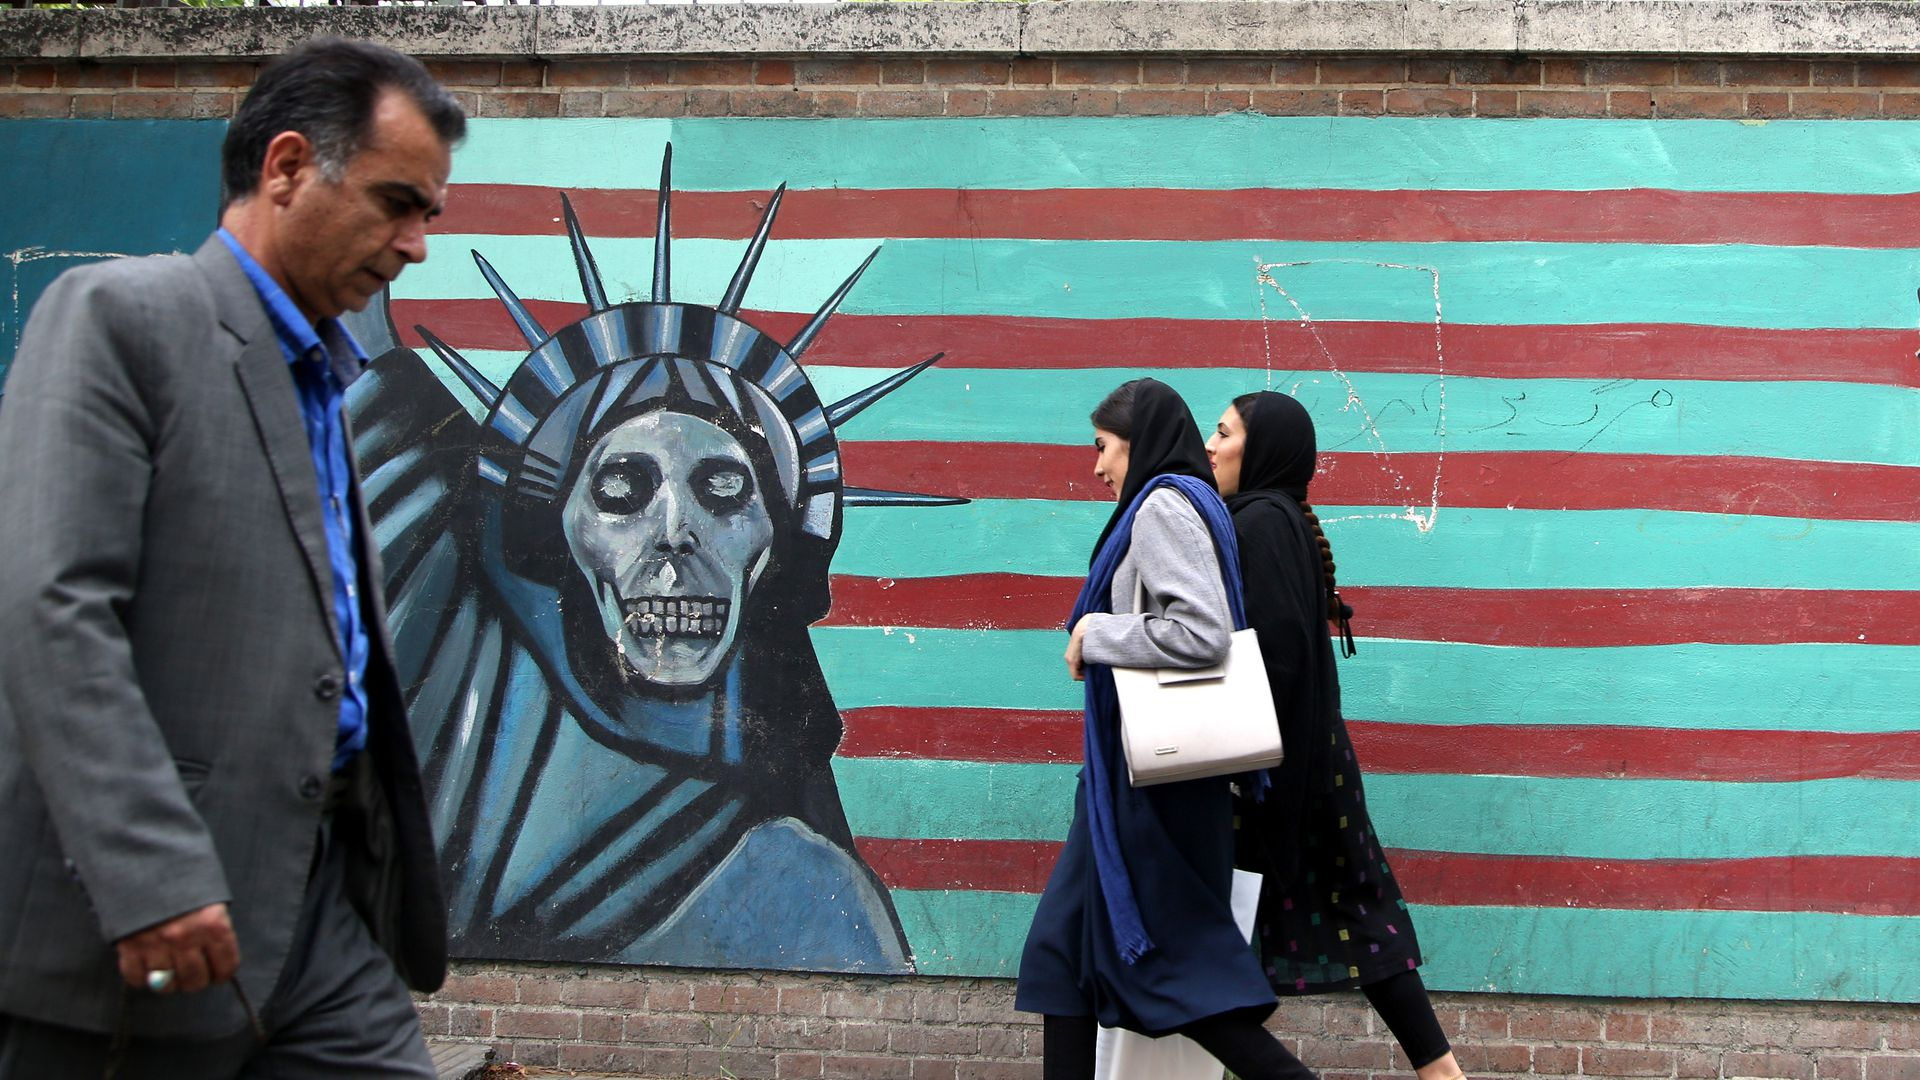 People past a mural painted on the wall of the former U.S. Embassy in Tehran, Iran, on May 9, 2018. US President Donald Trump announced 'withdrawal' from Iran nuclear deal on May 9, 2018.